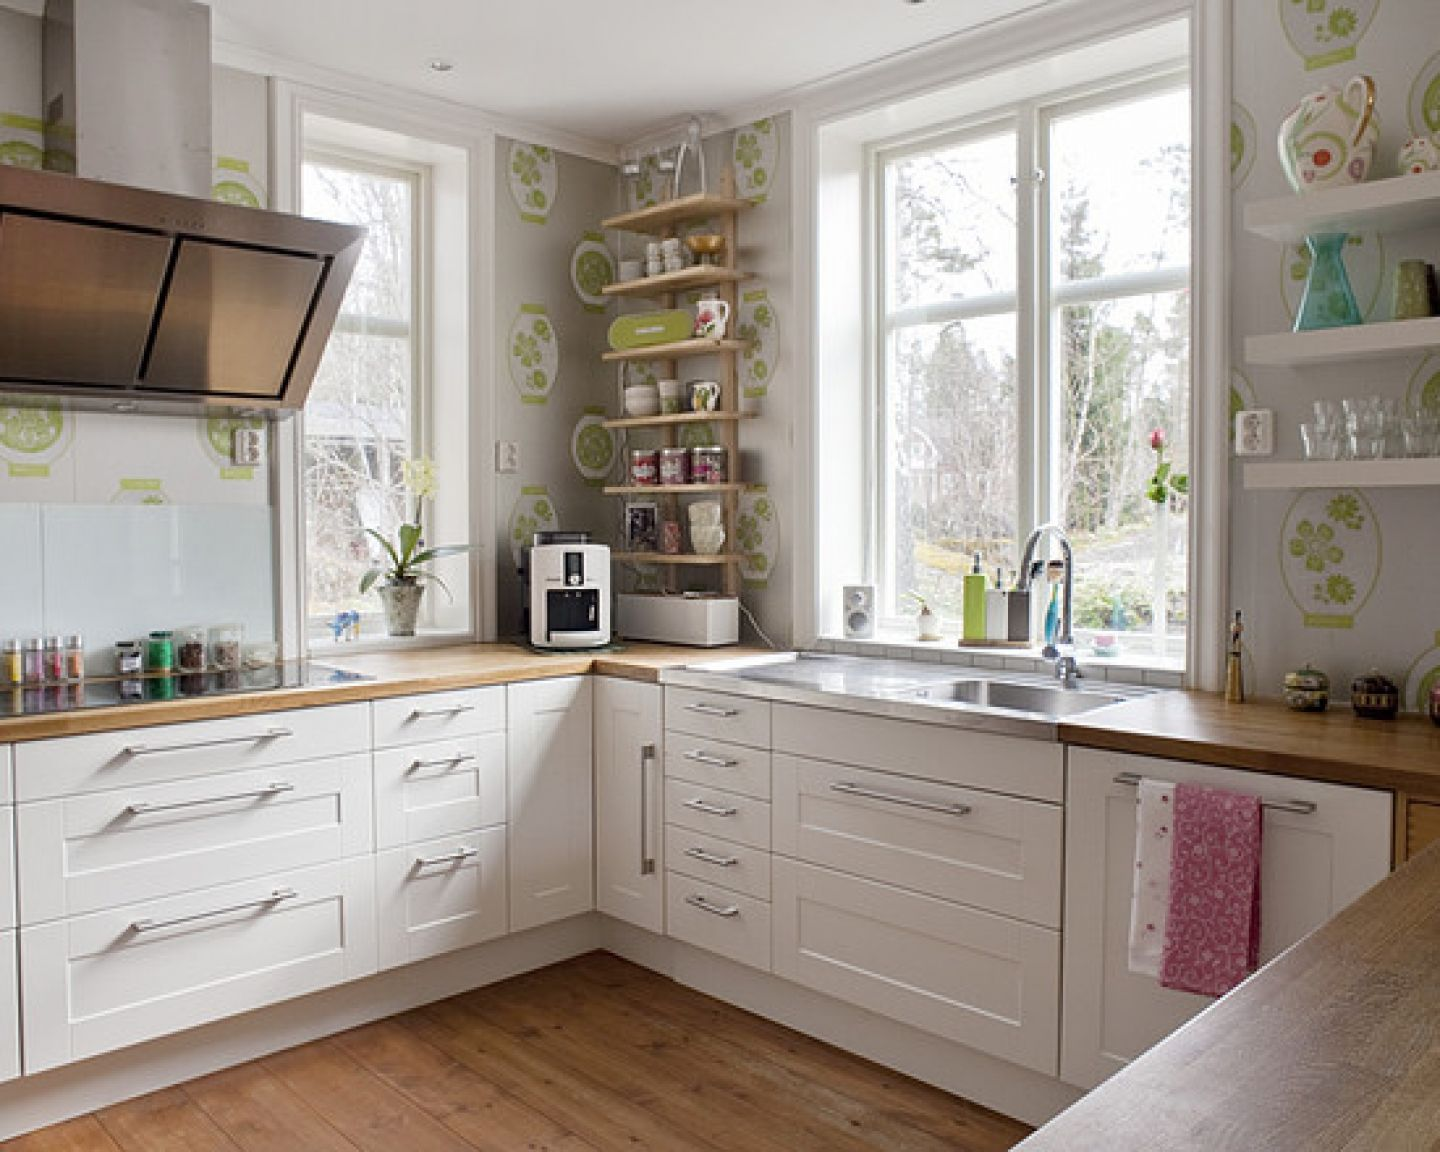 ikea white kitchen design pictures remodel decor and ideas page 3